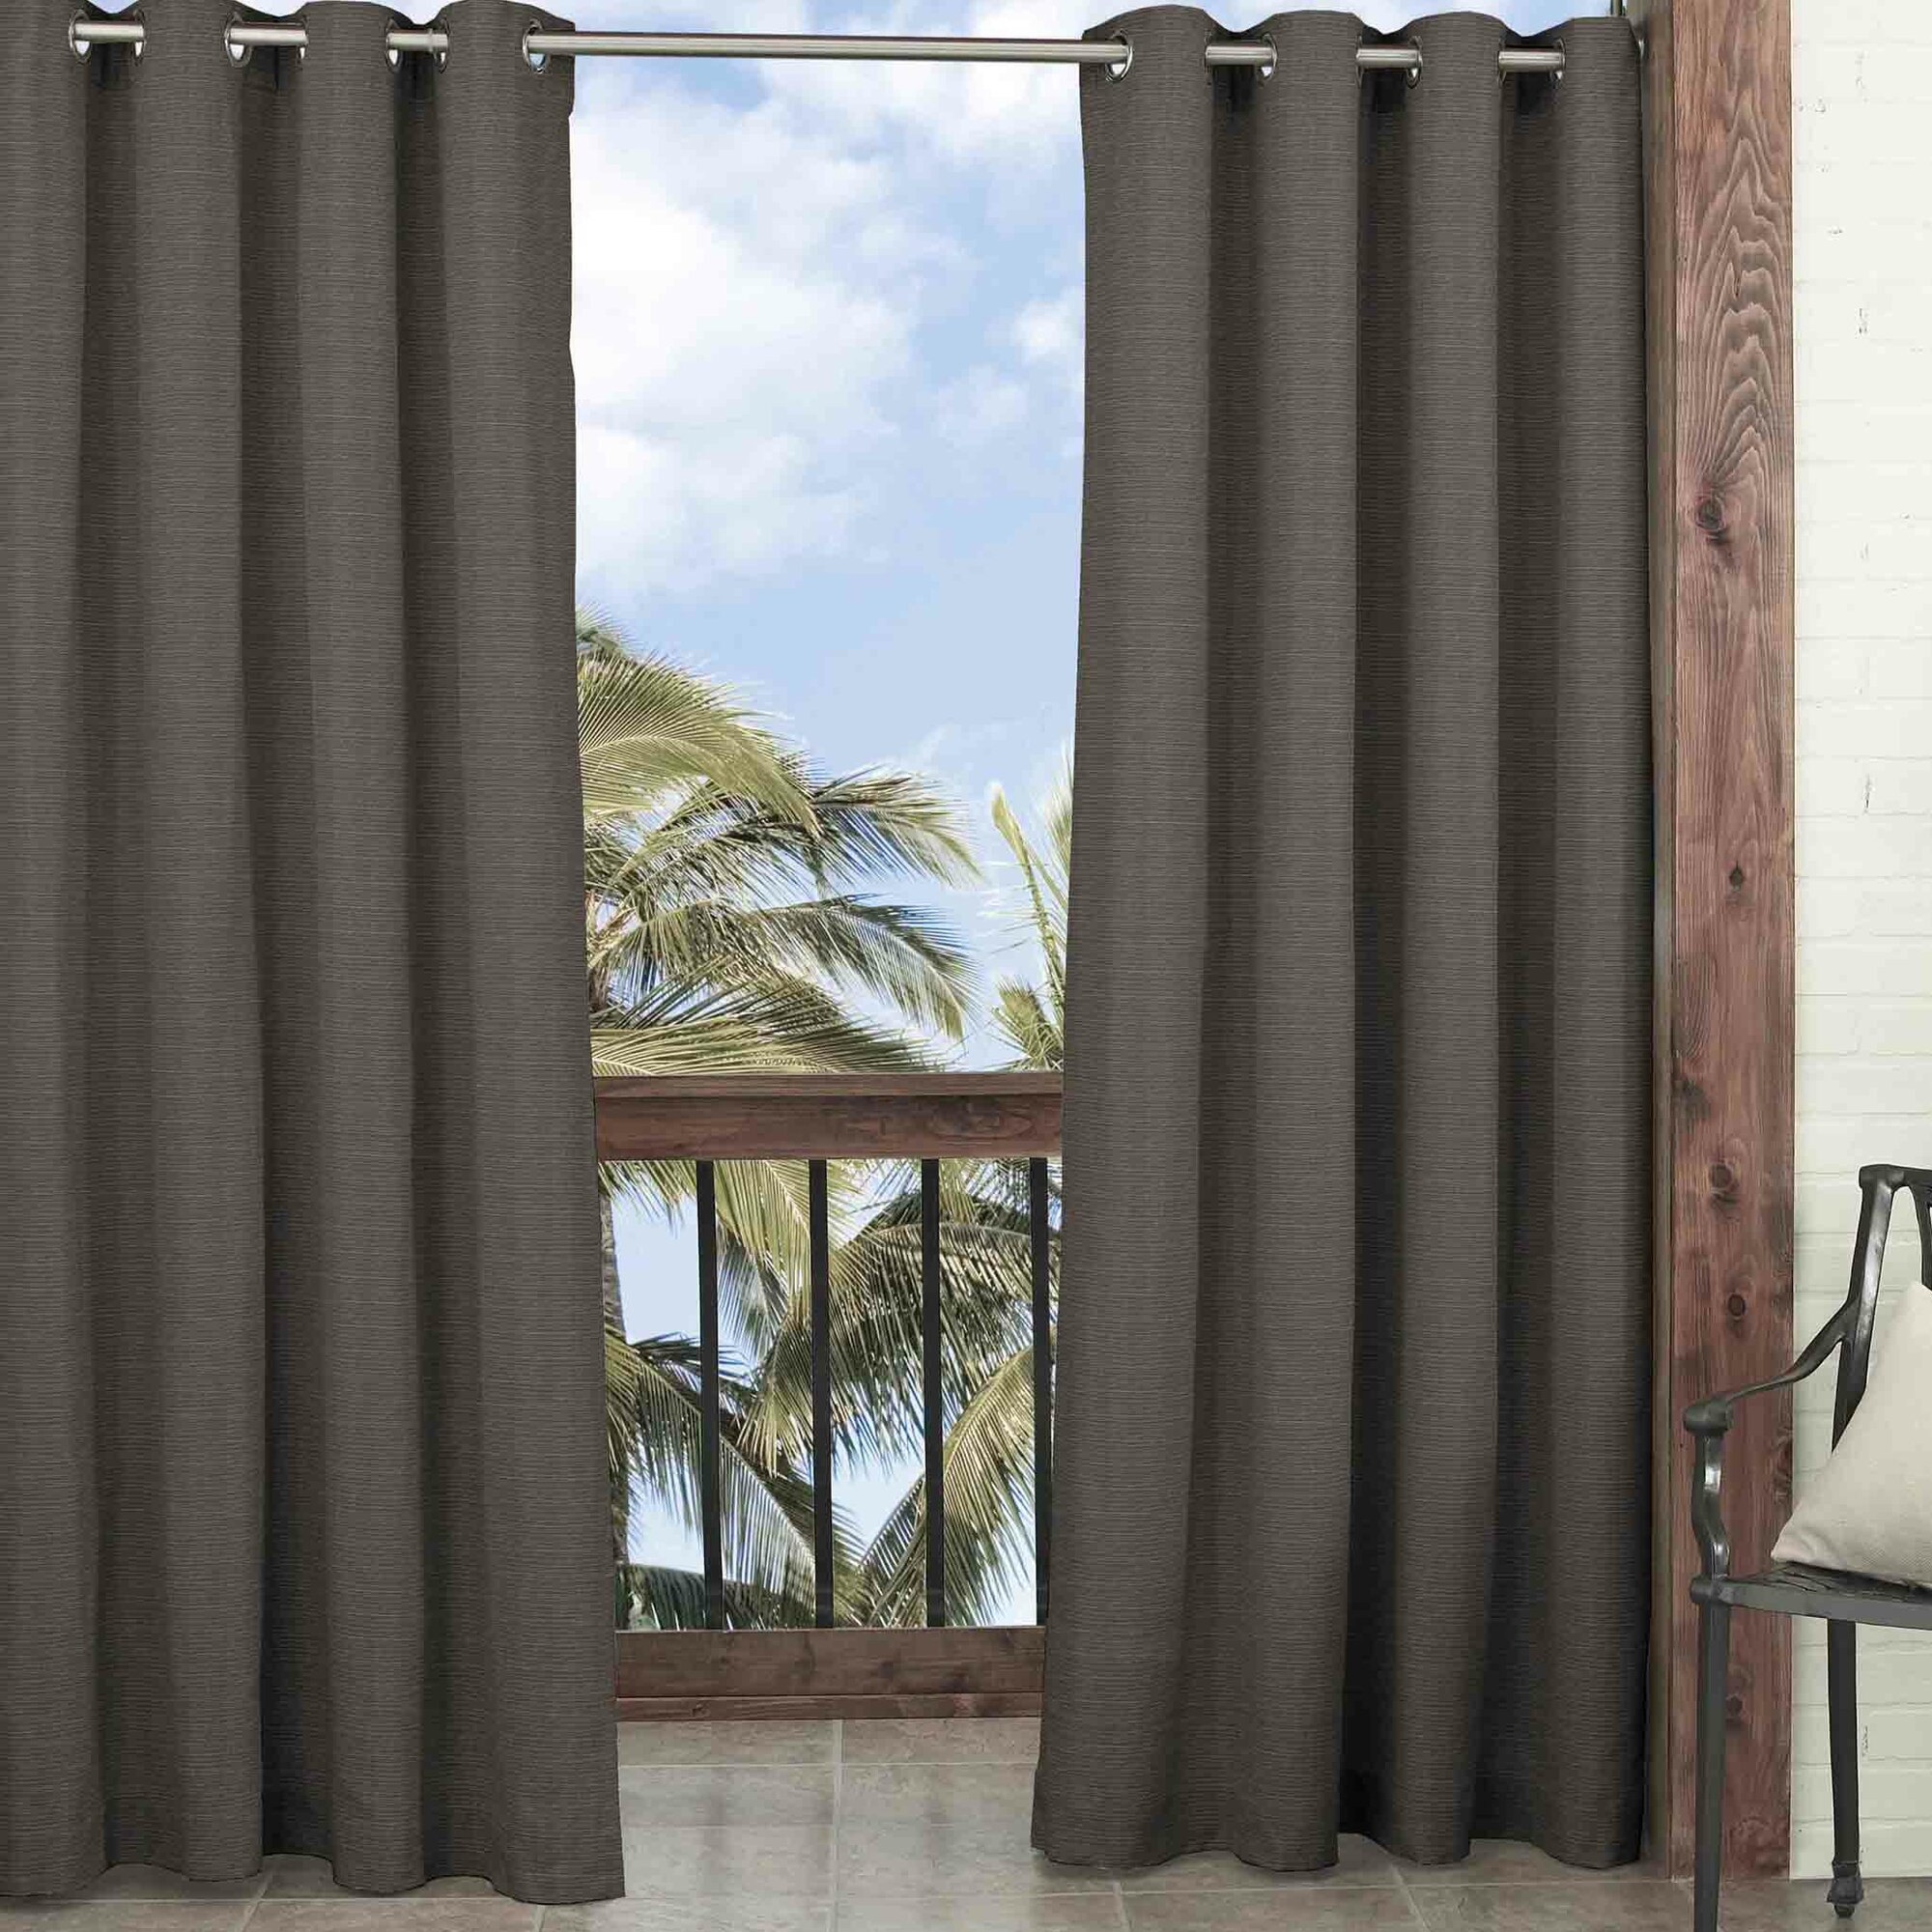 Sheer outdoor curtains - Key Largo Solid Blackout Thermal Outdoor Grommet Single Curtain Panel